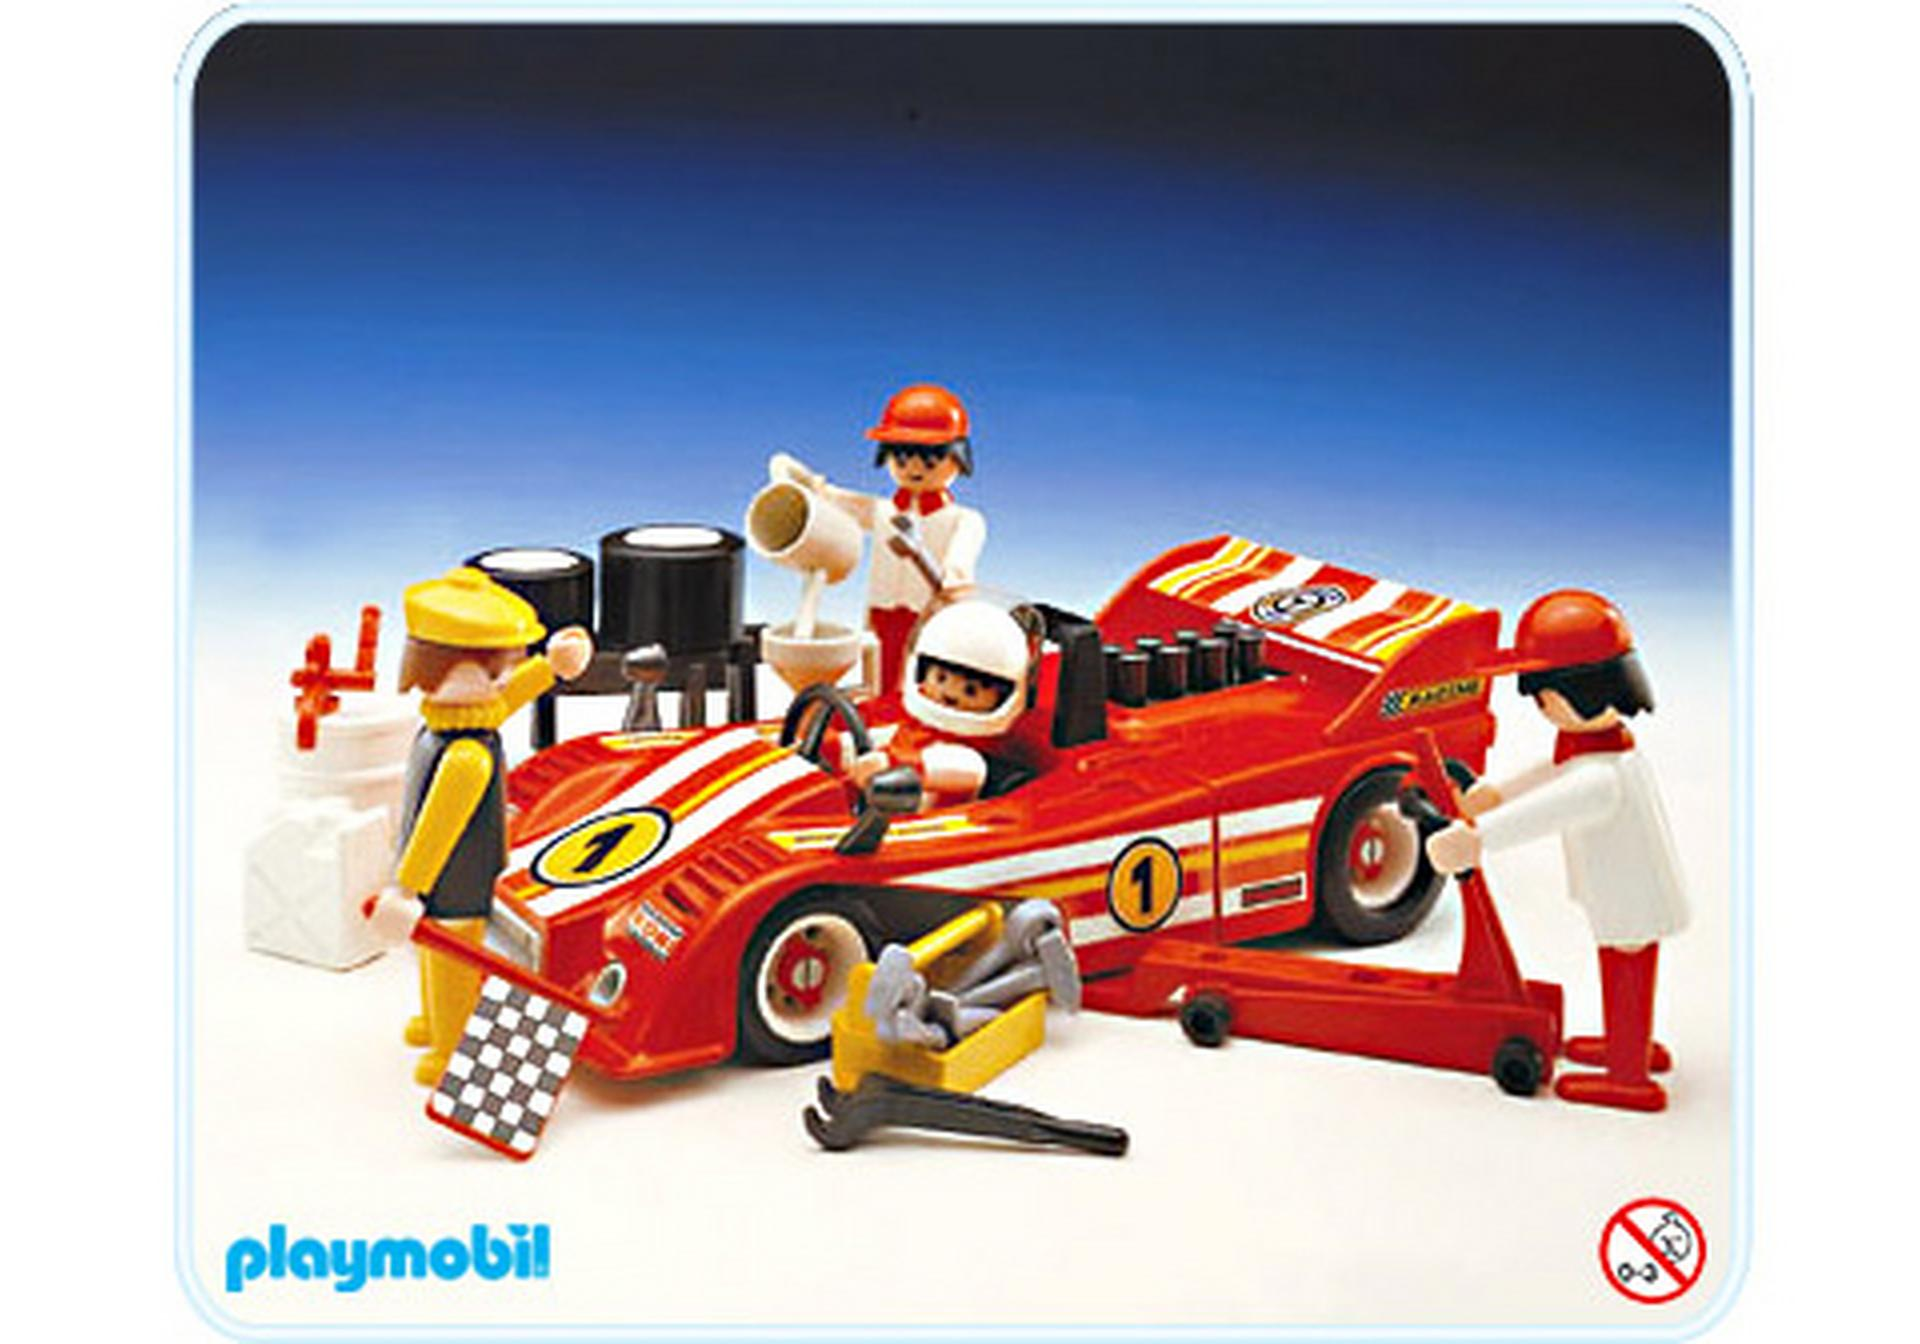 voiture de course 3147 a playmobil france. Black Bedroom Furniture Sets. Home Design Ideas